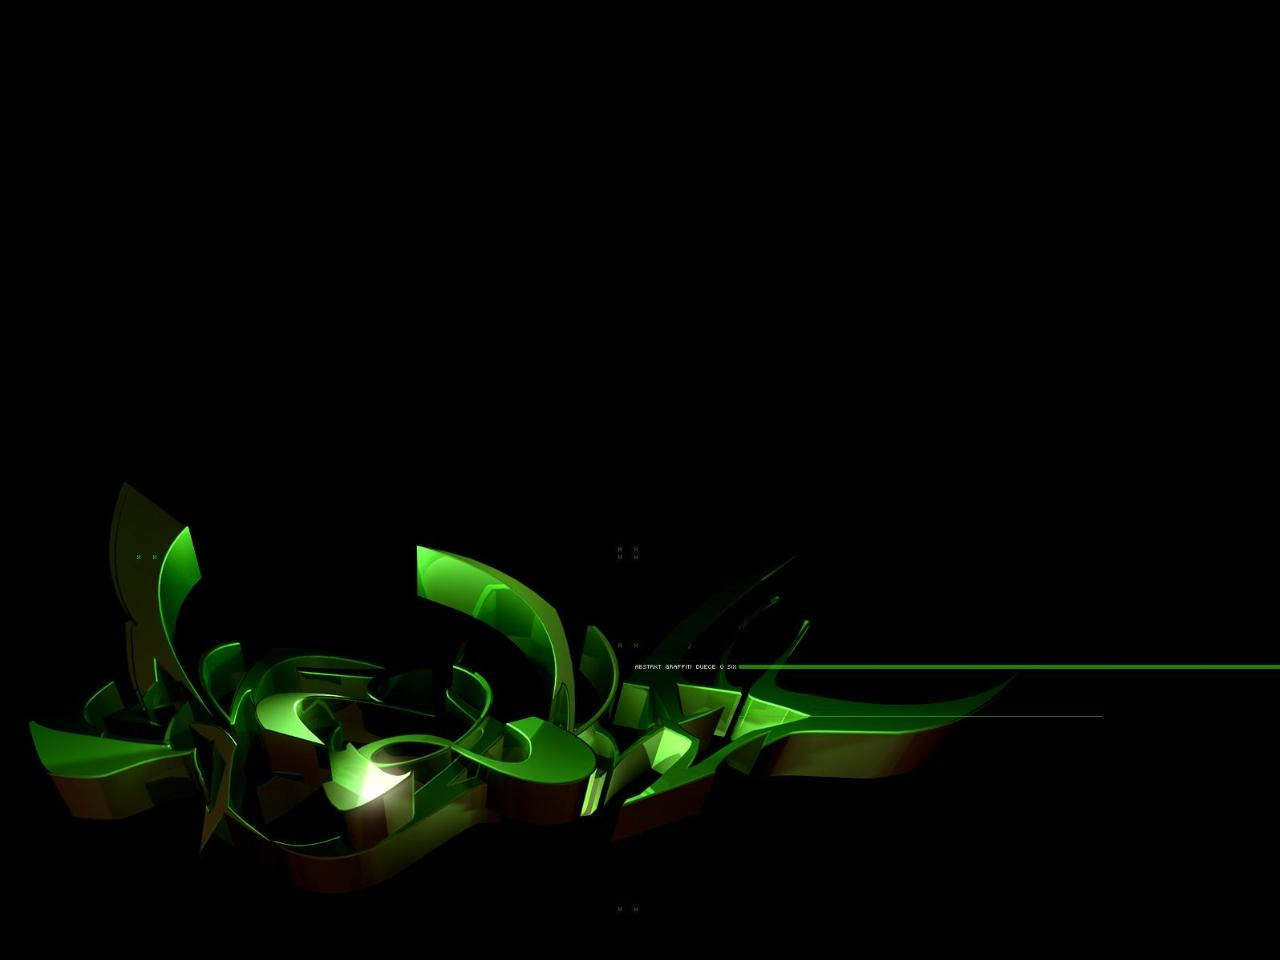 http://1.bp.blogspot.com/_uTGKd6u5pJ4/TUtprbCG72I/AAAAAAAAAWk/PAGAoZqs7pM/s1600/3D+green+in+black+graffiti+wallpaper.jpg